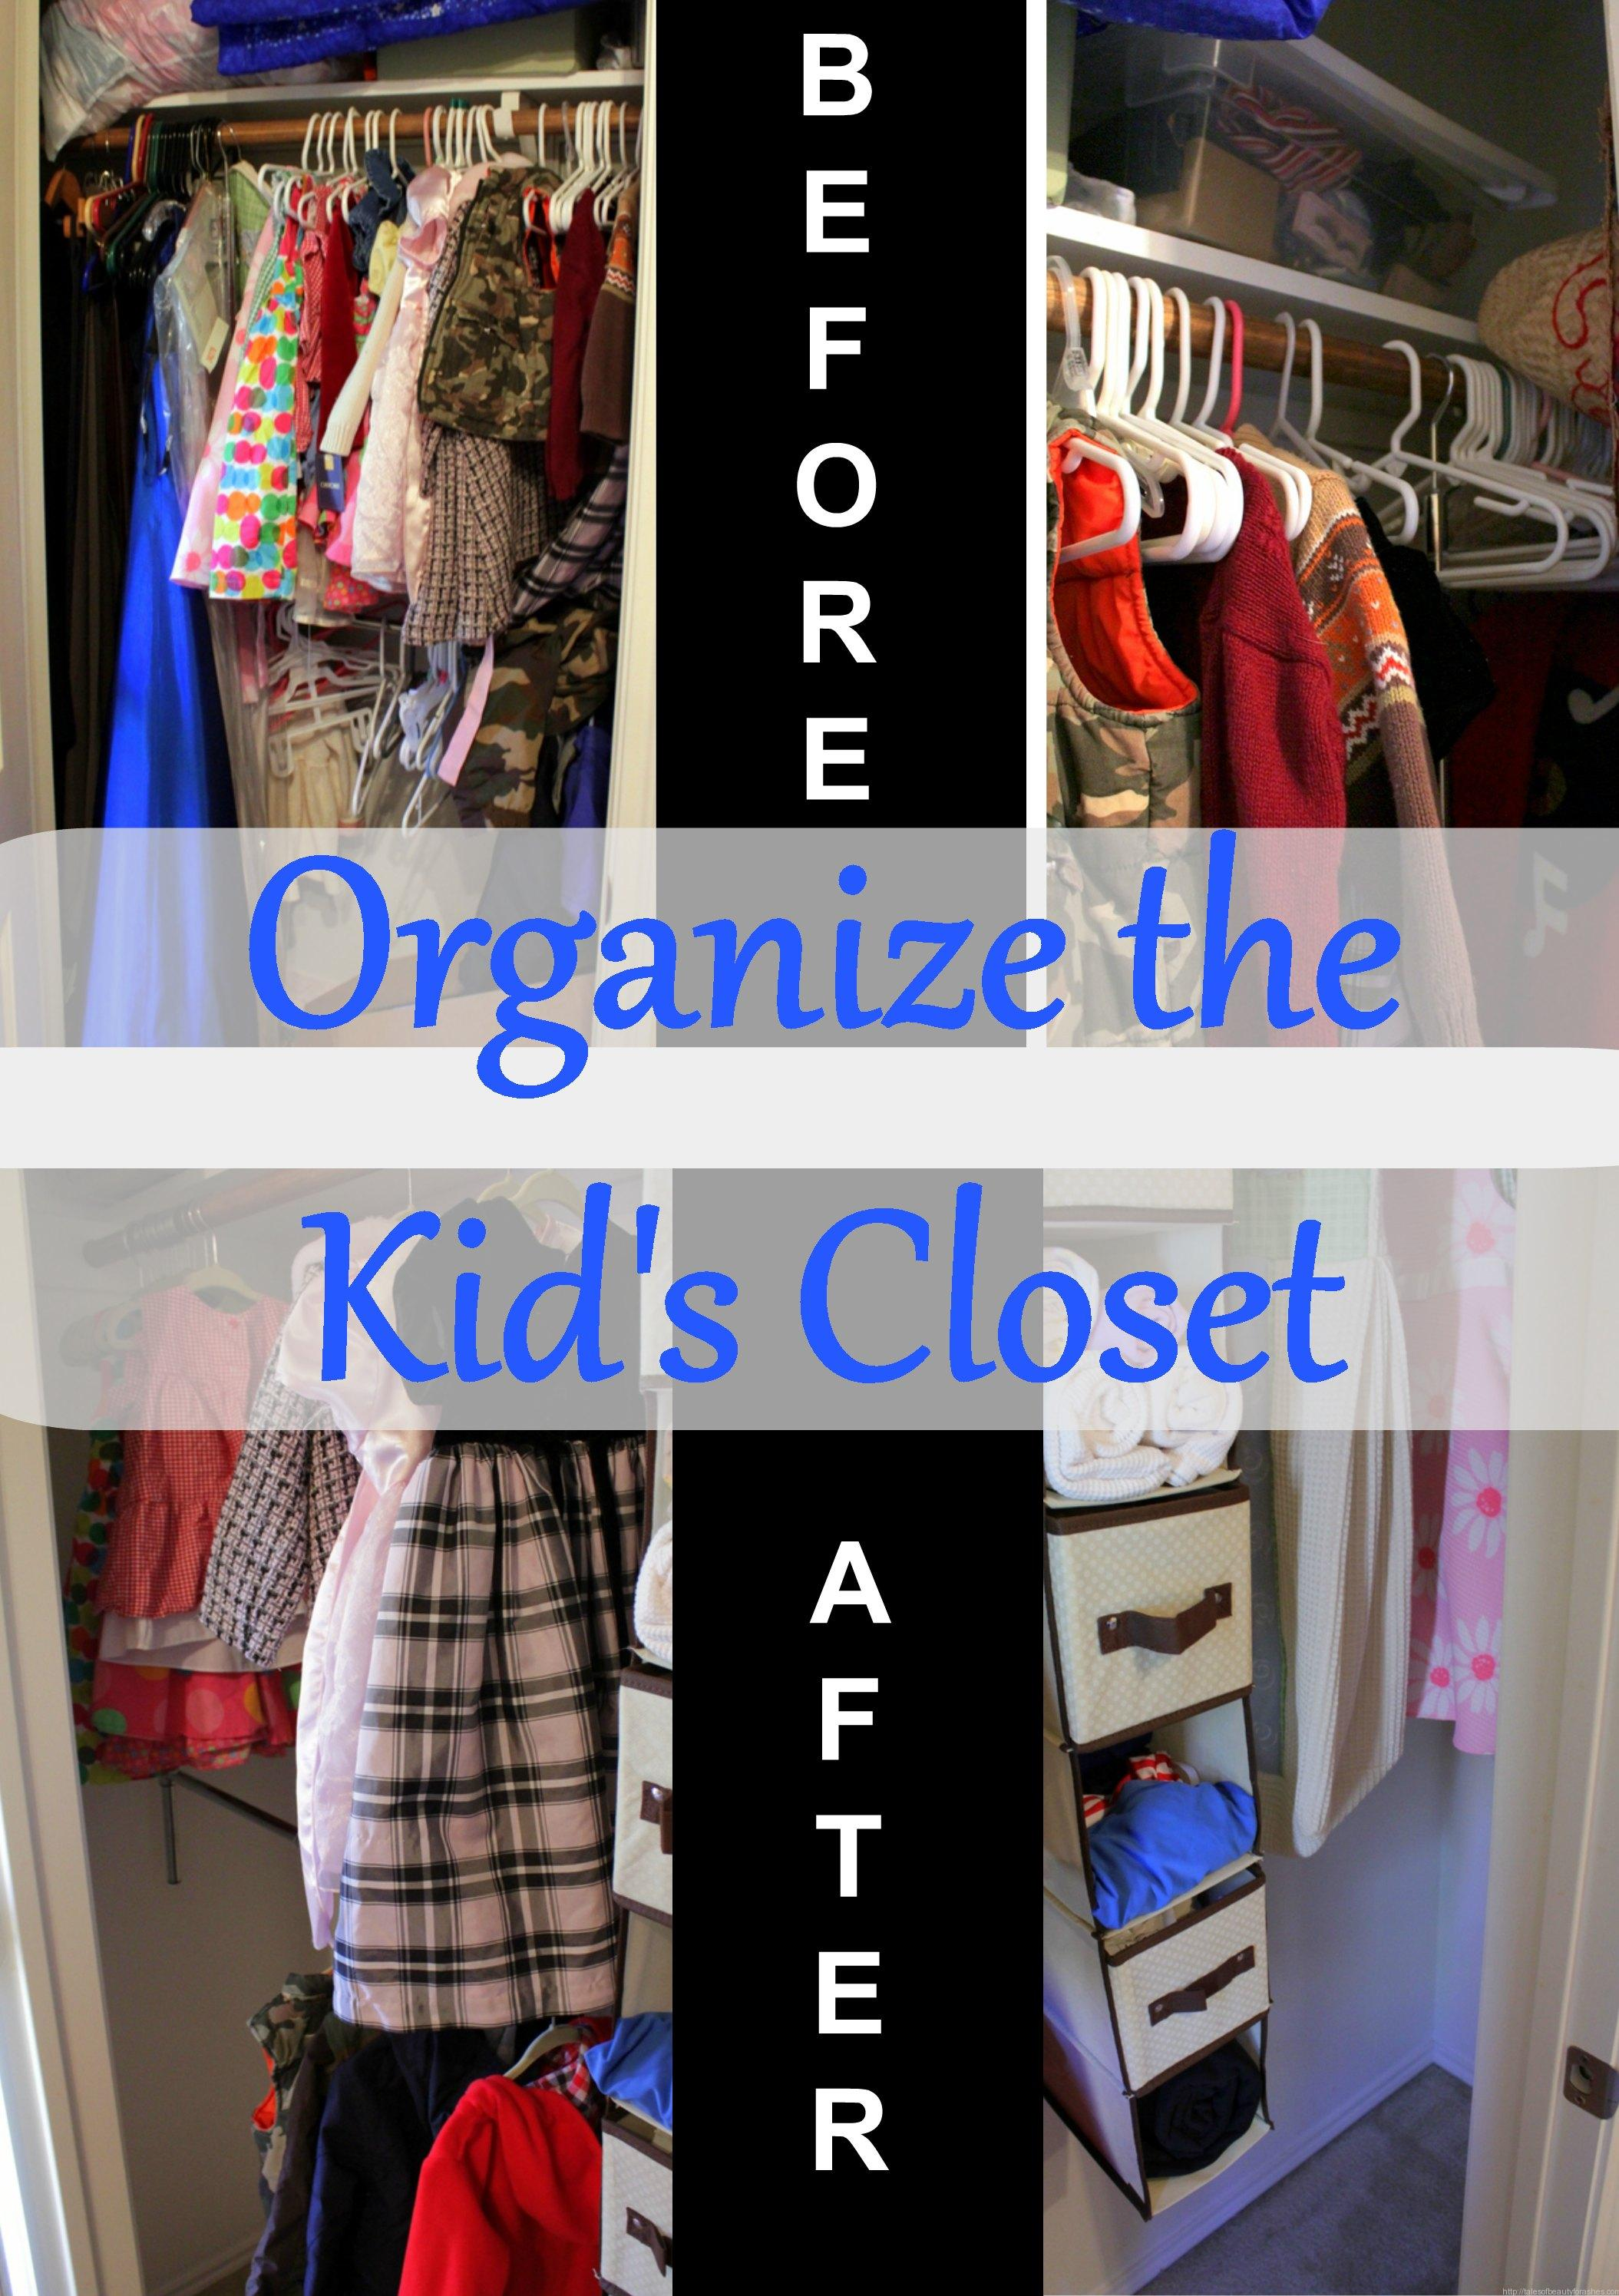 organization quick kids diy trash fast closet tuesday the out cheap daily trashouttuesday starr and